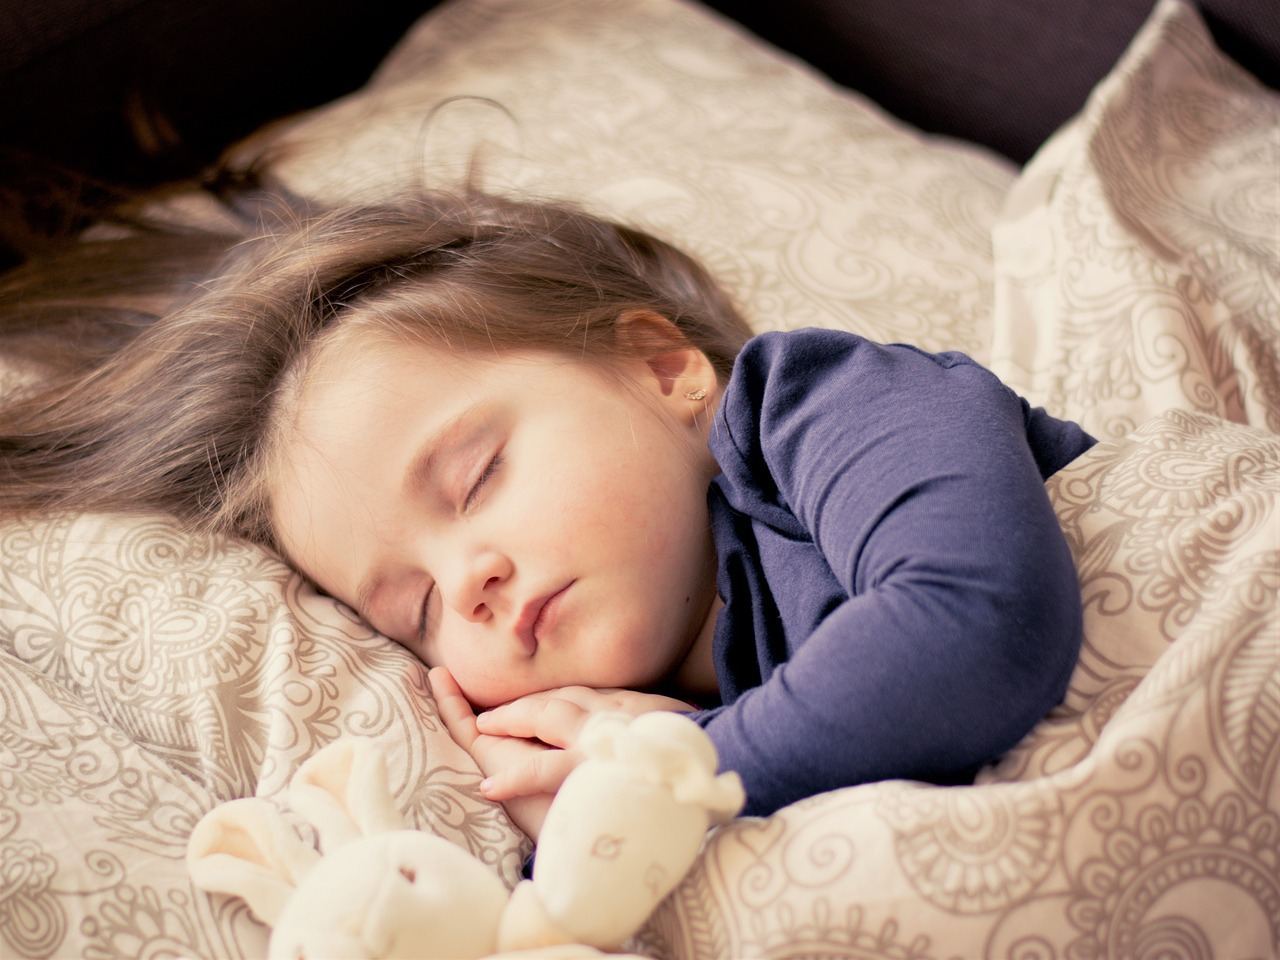 Infant sleeping in a bed